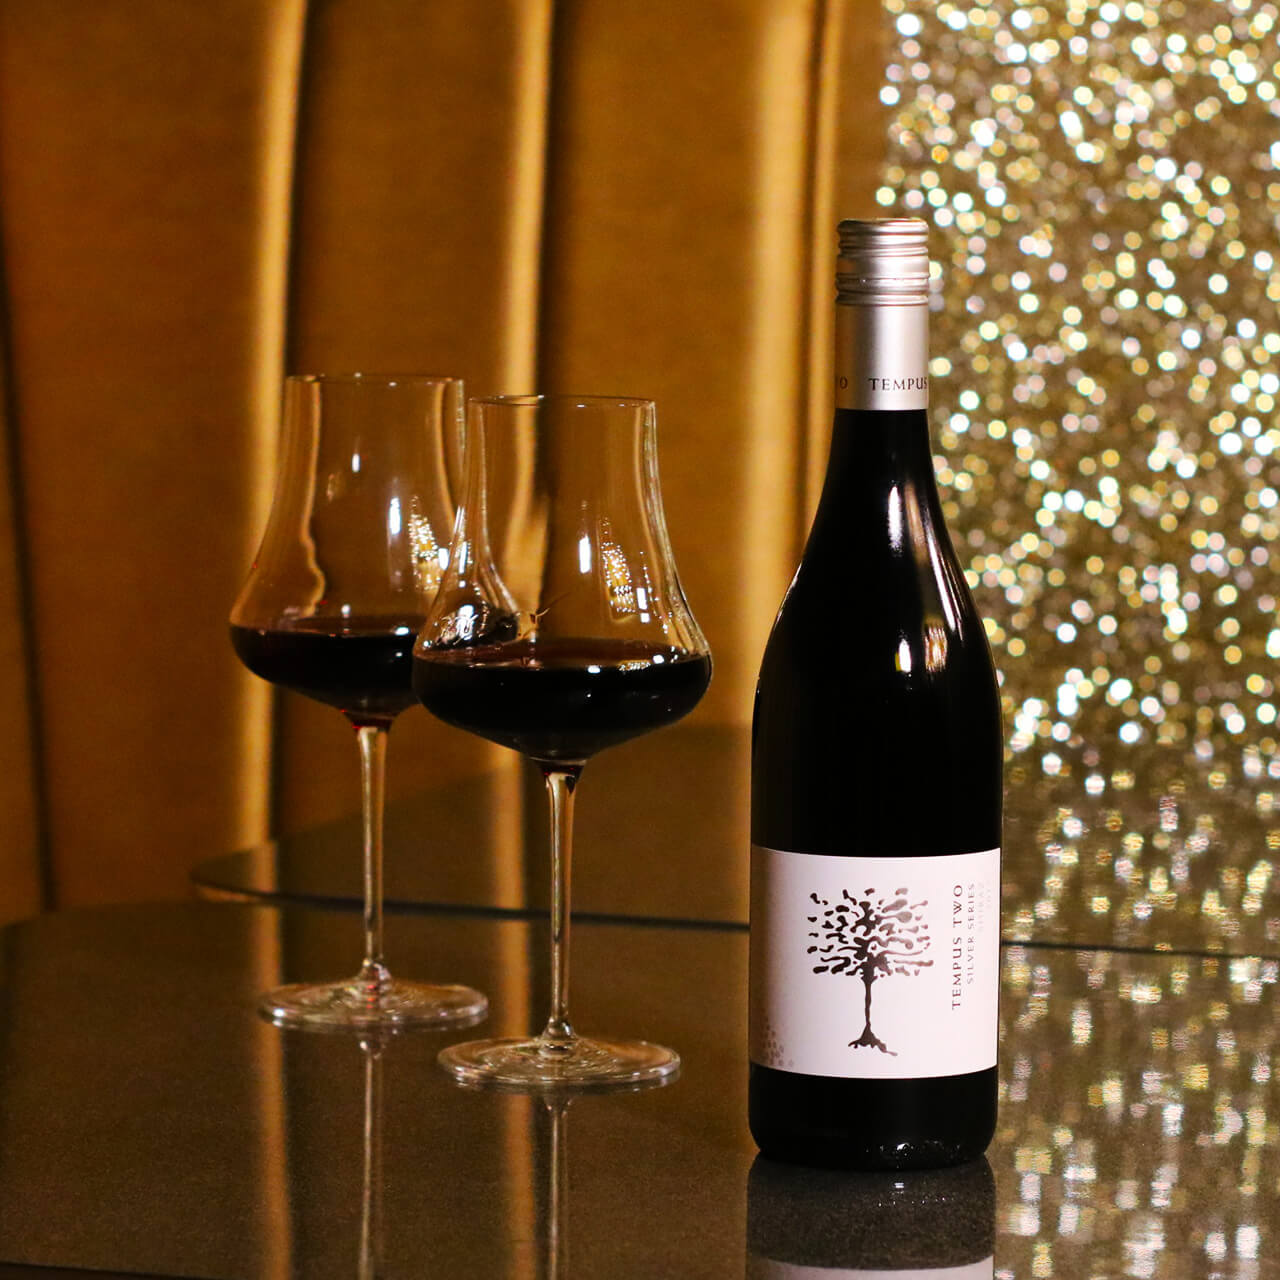 Tempus Two Silver Series Shiraz - Frankies Wine Bar